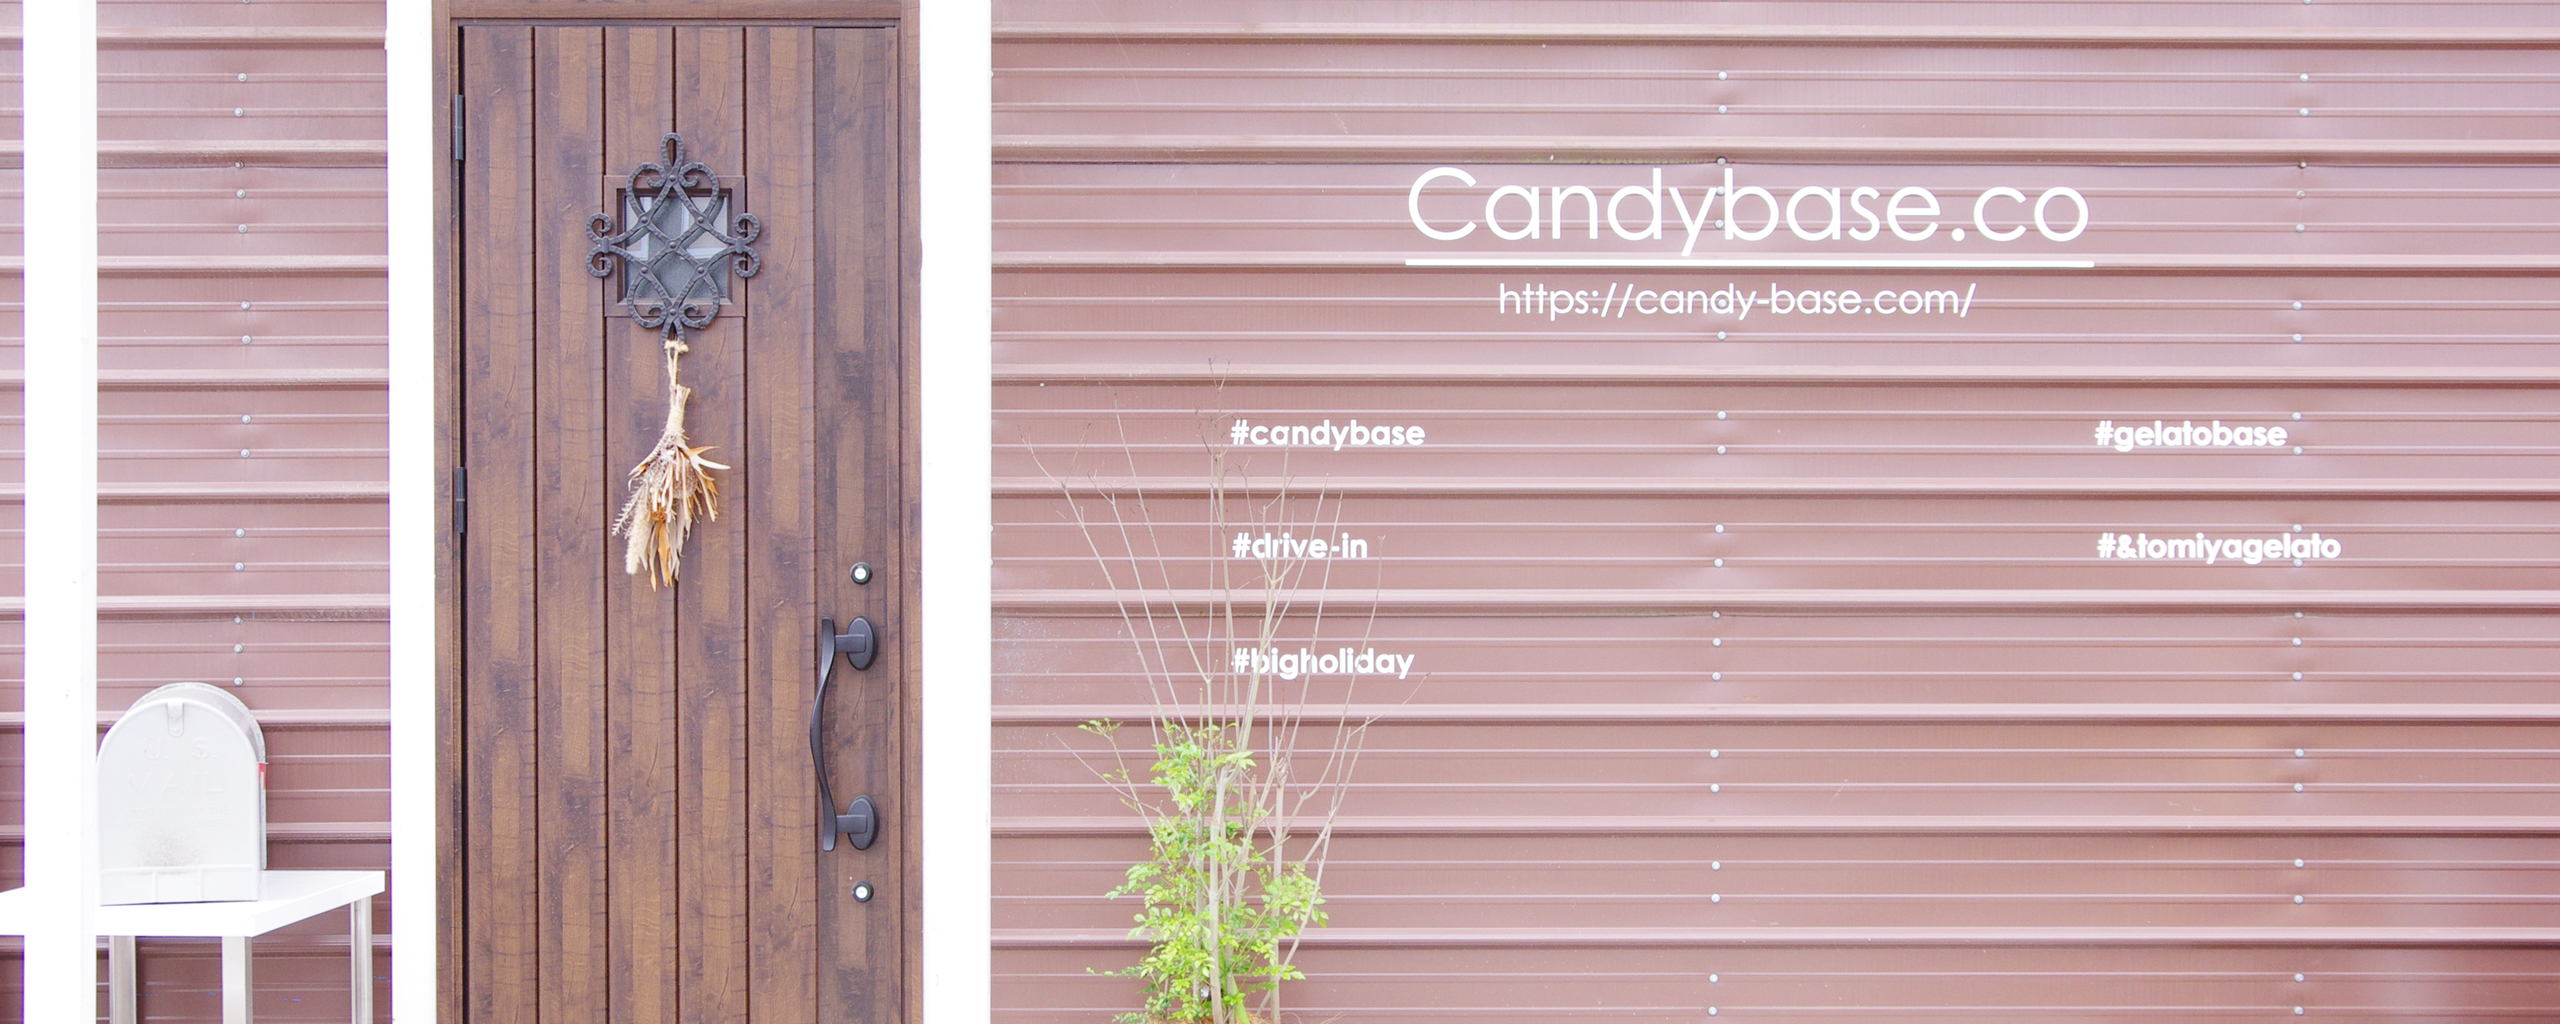 Candybase.co MainVisual for PC